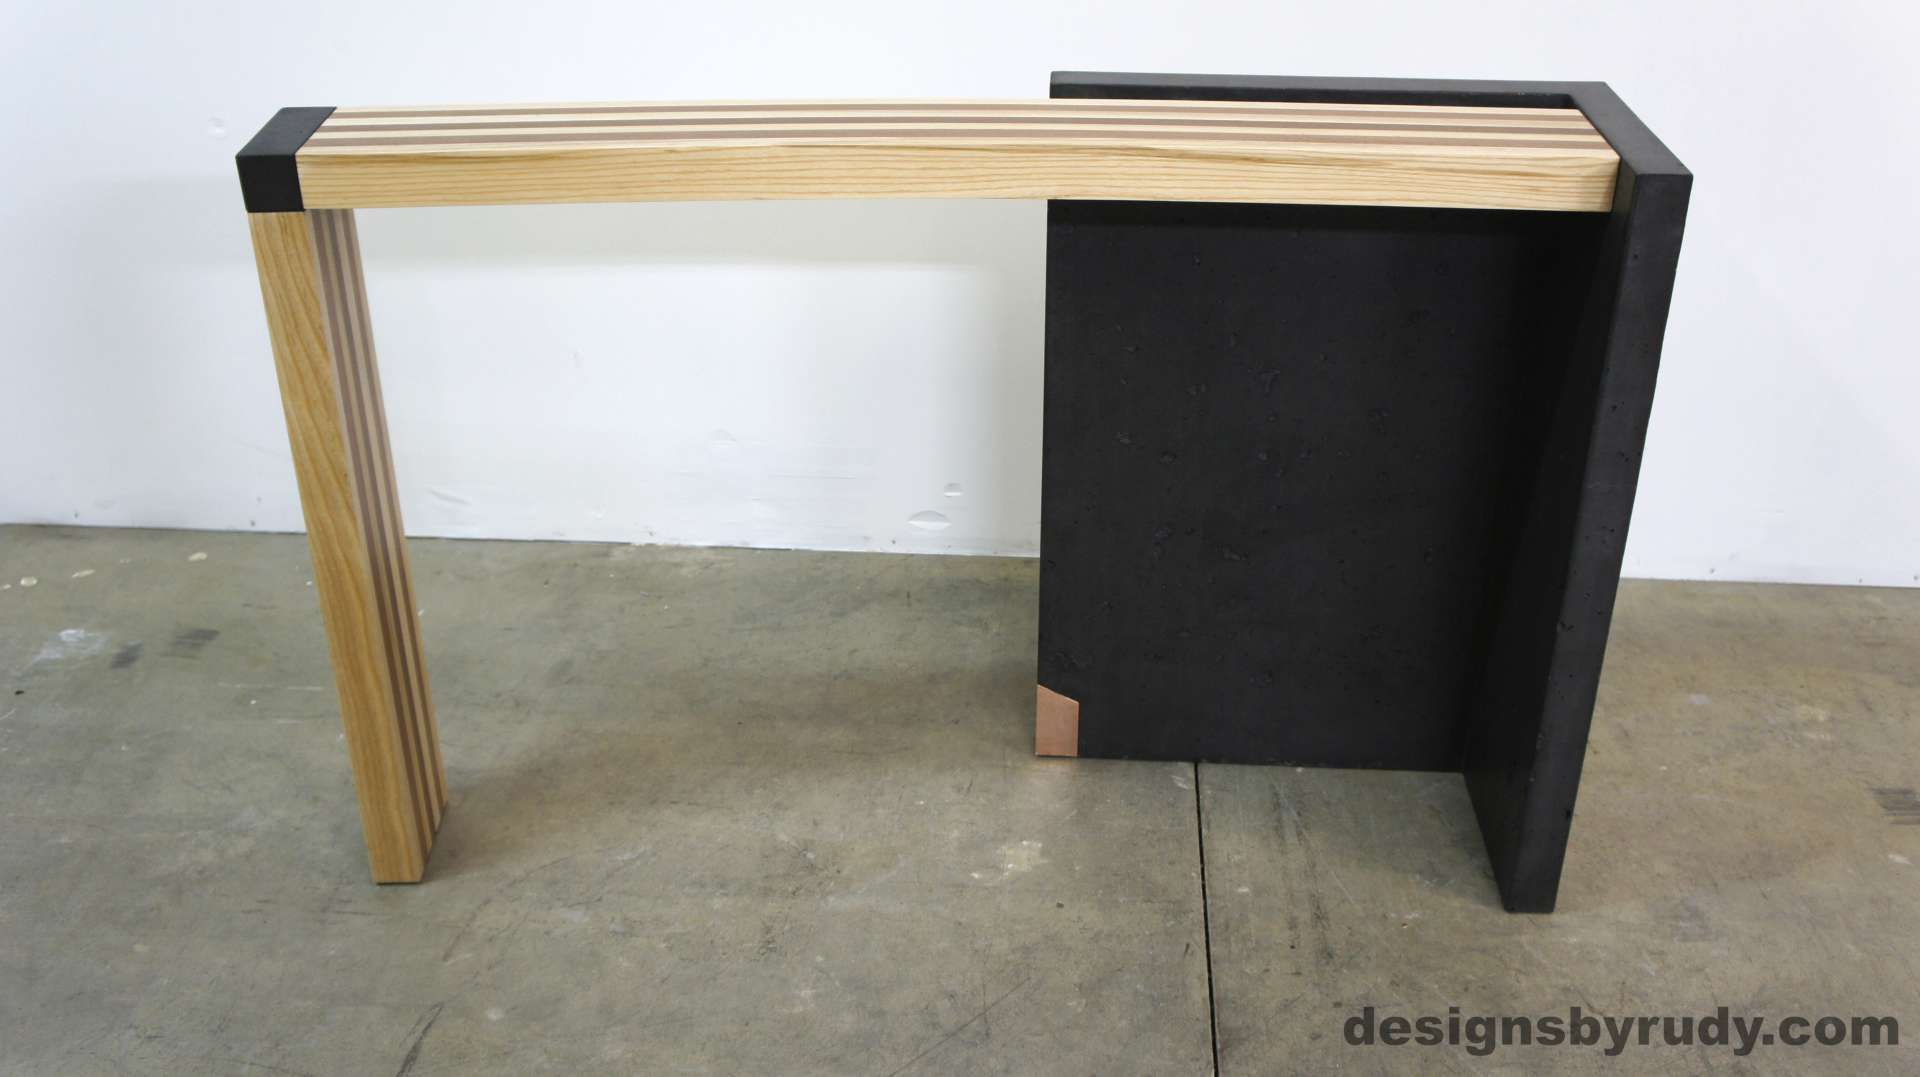 Left Curve Conrete Console Table Full Front View, Designs By Rudy